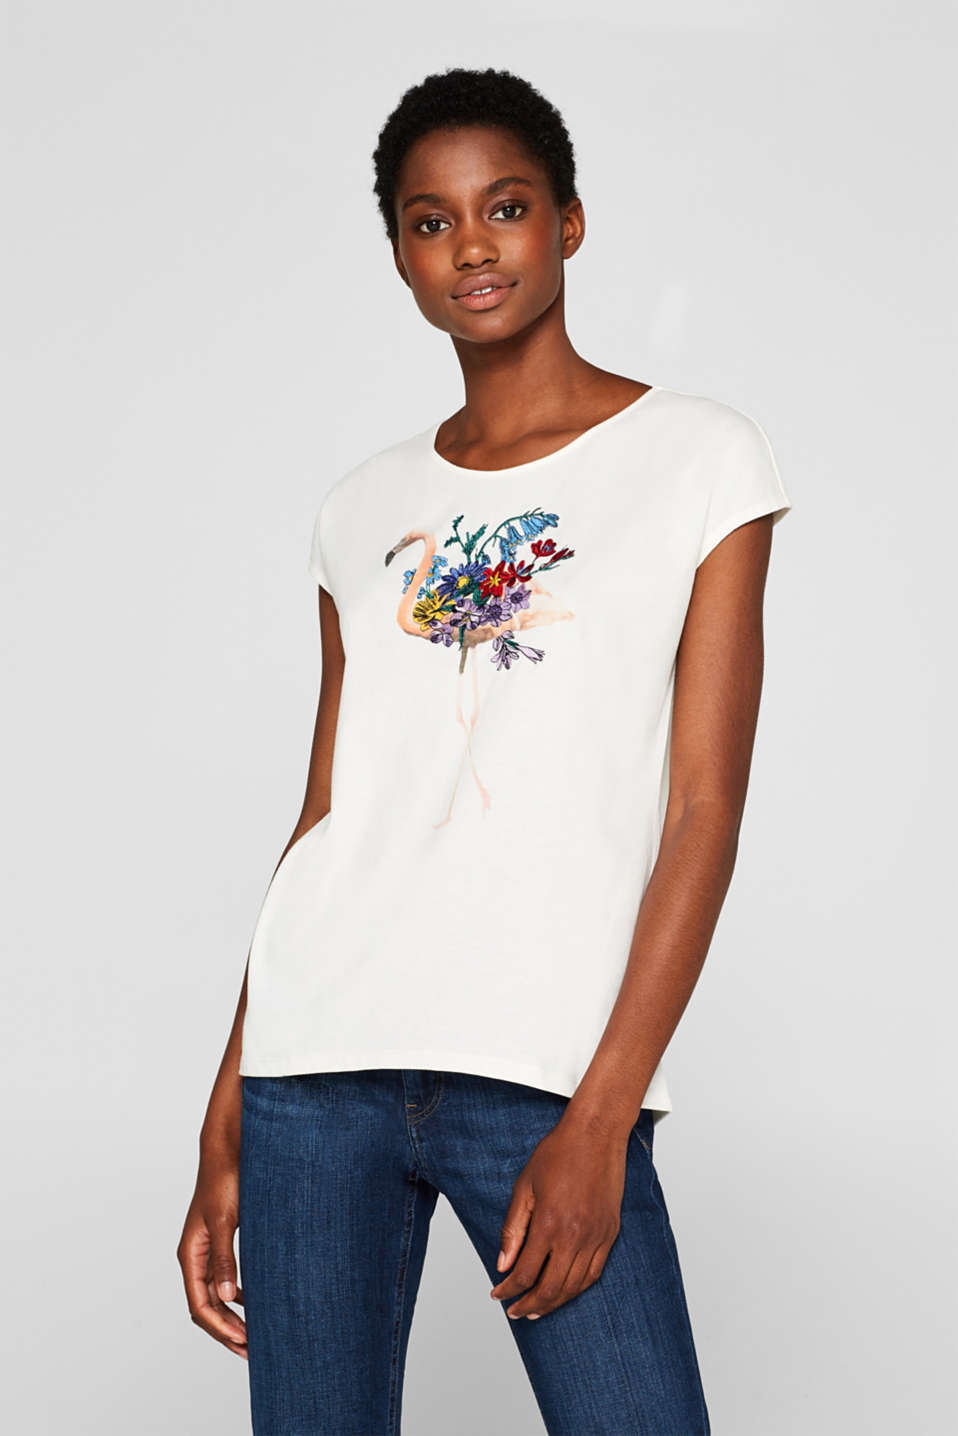 edc - Printed T-shirt with embroidery, 100% cotton